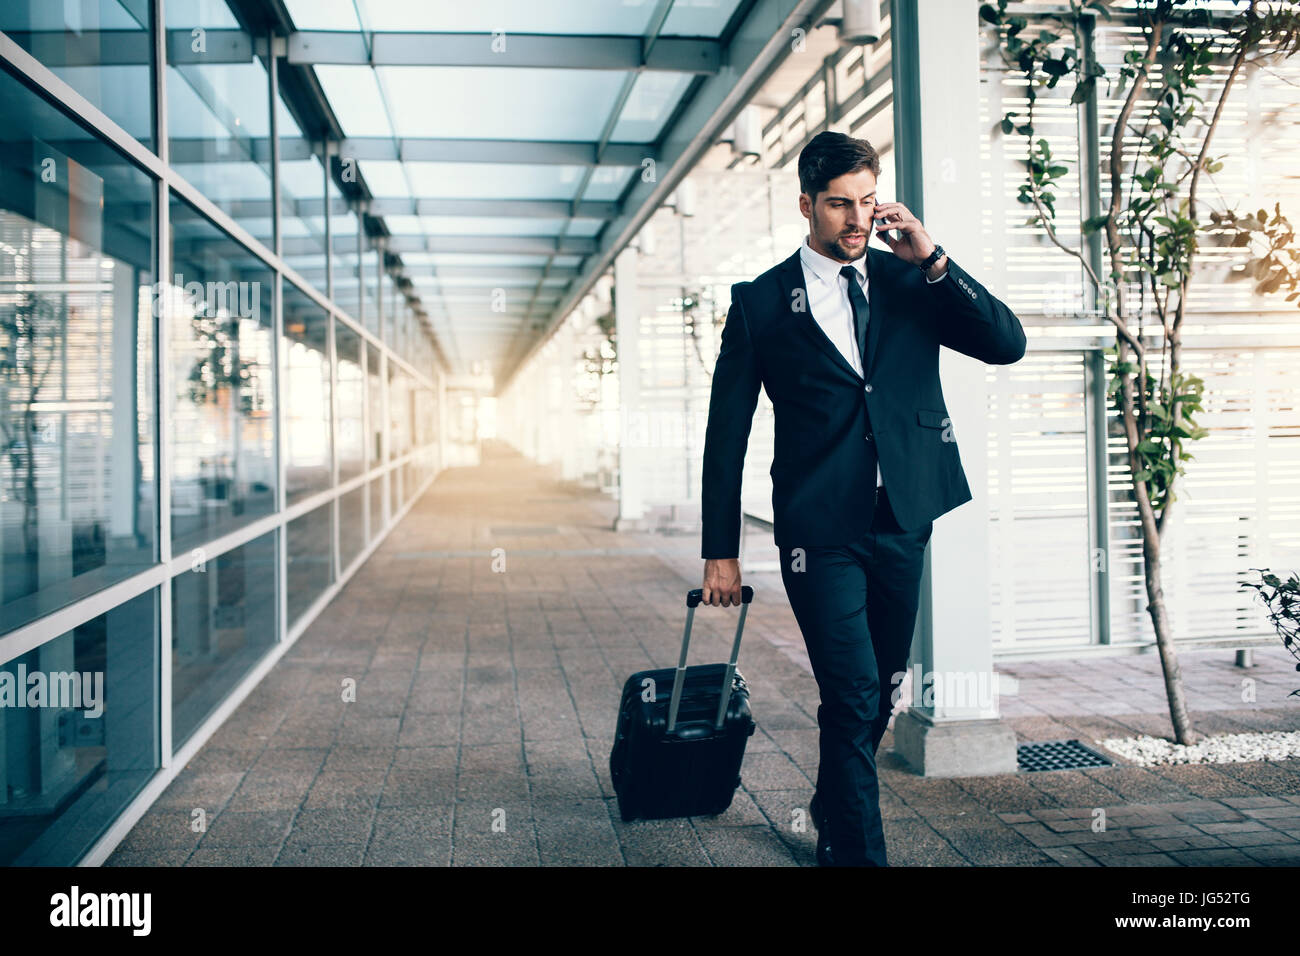 Handsome young man on business trip walking with his luggage and talking on cellphone at airport. Travelling businessman - Stock Image